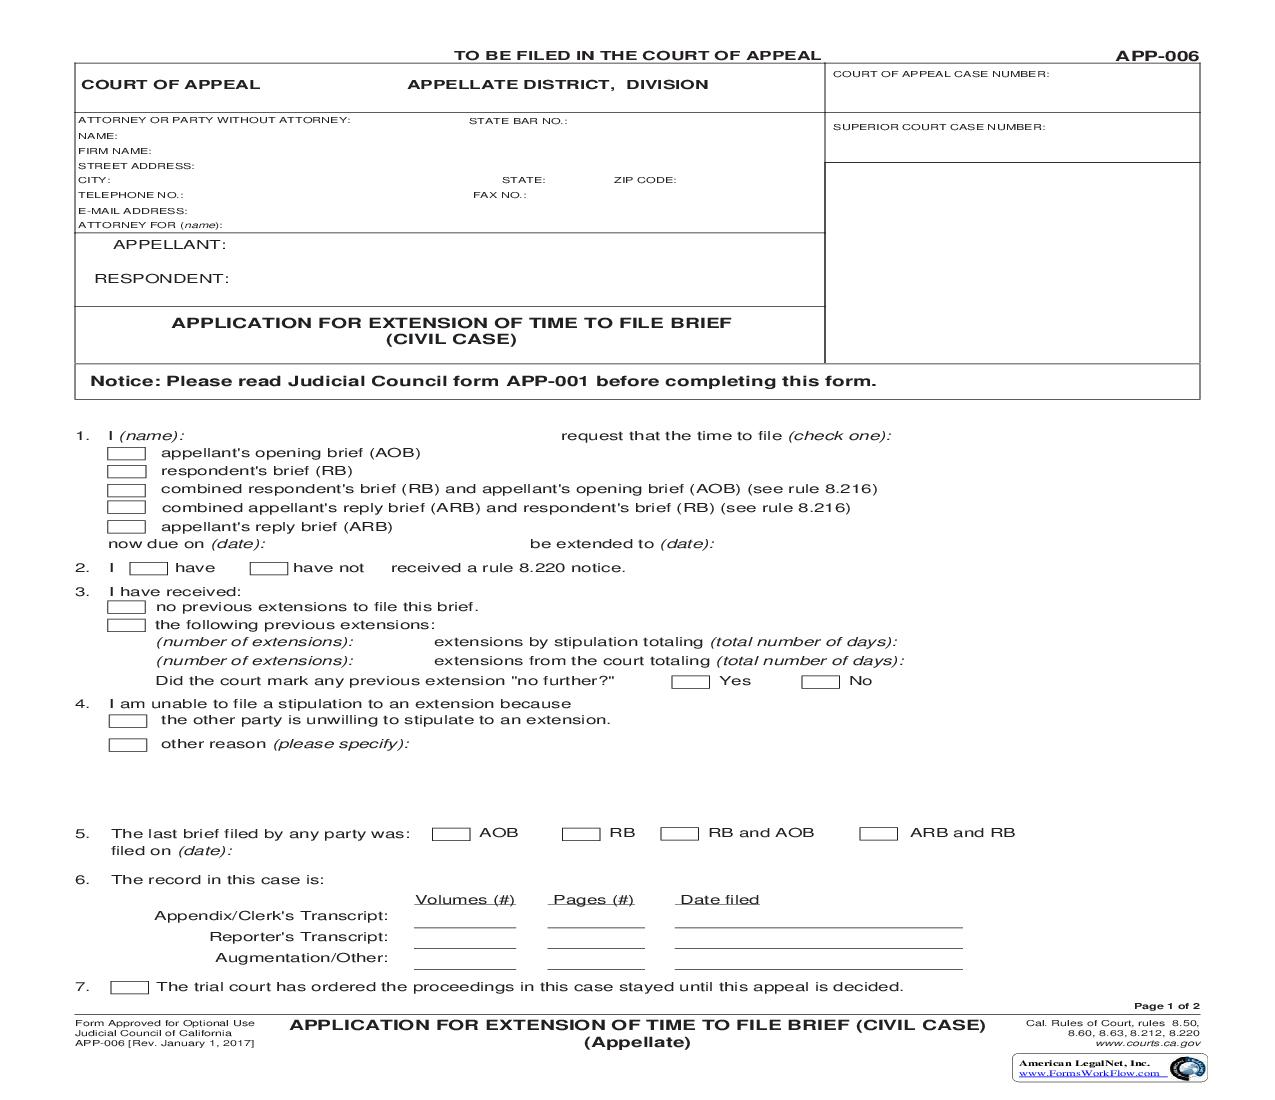 Application For Extension Of Time To File Brief (Civil Case) {APP-006} | Pdf Fpdf Doc Docx | California